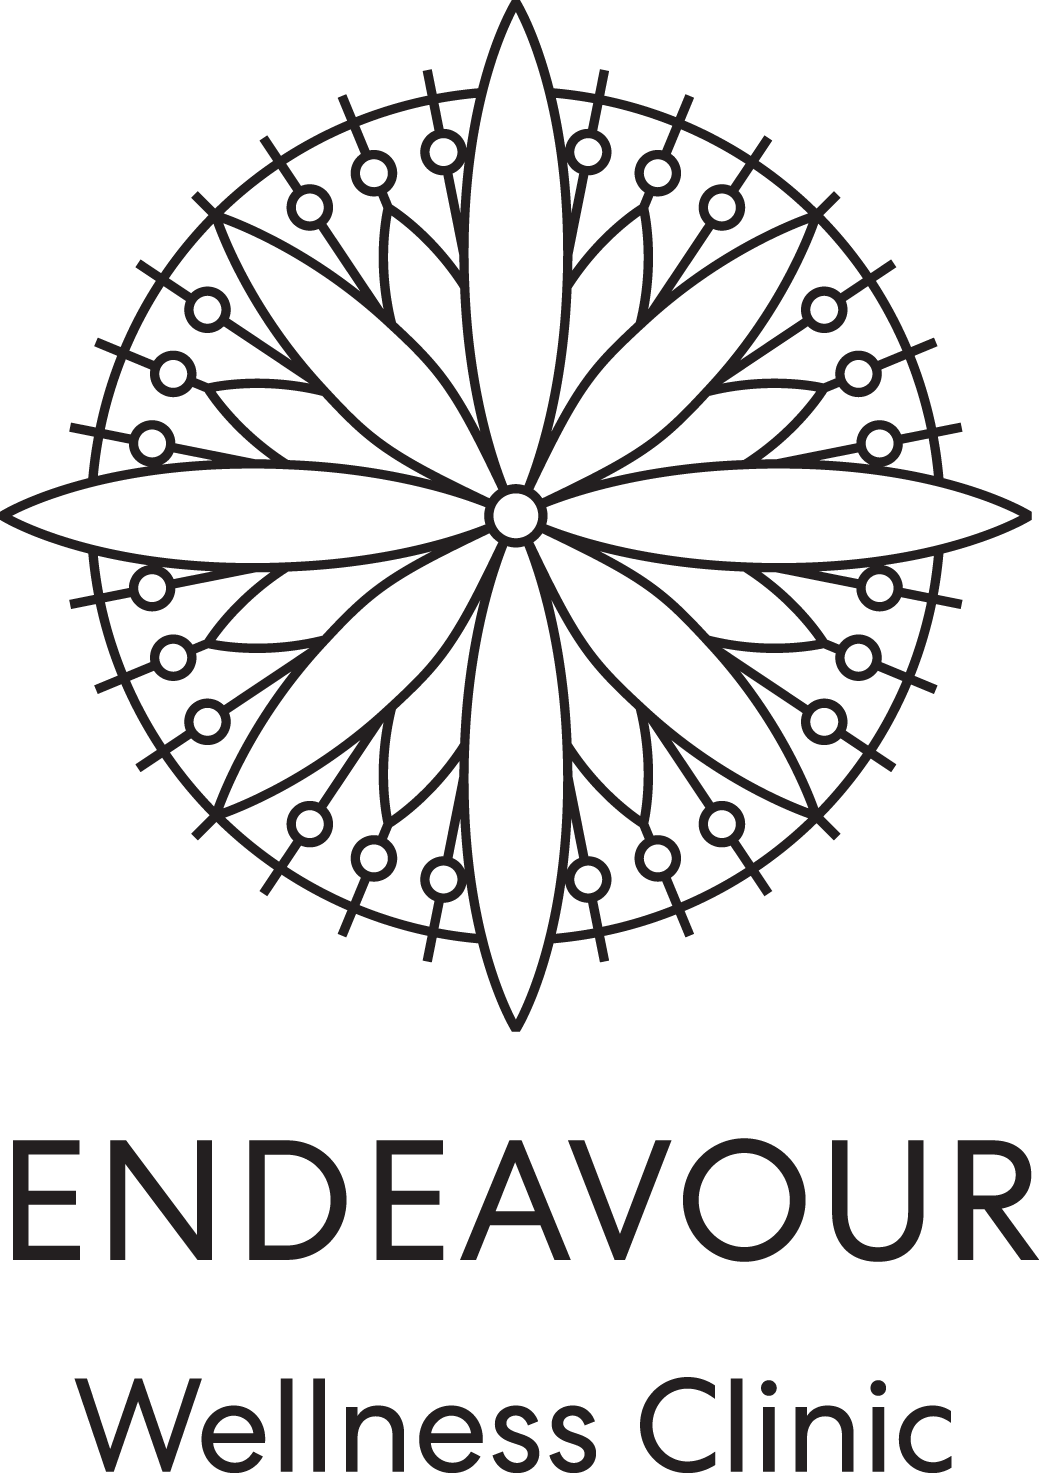 Endeavour Wellness Clinic